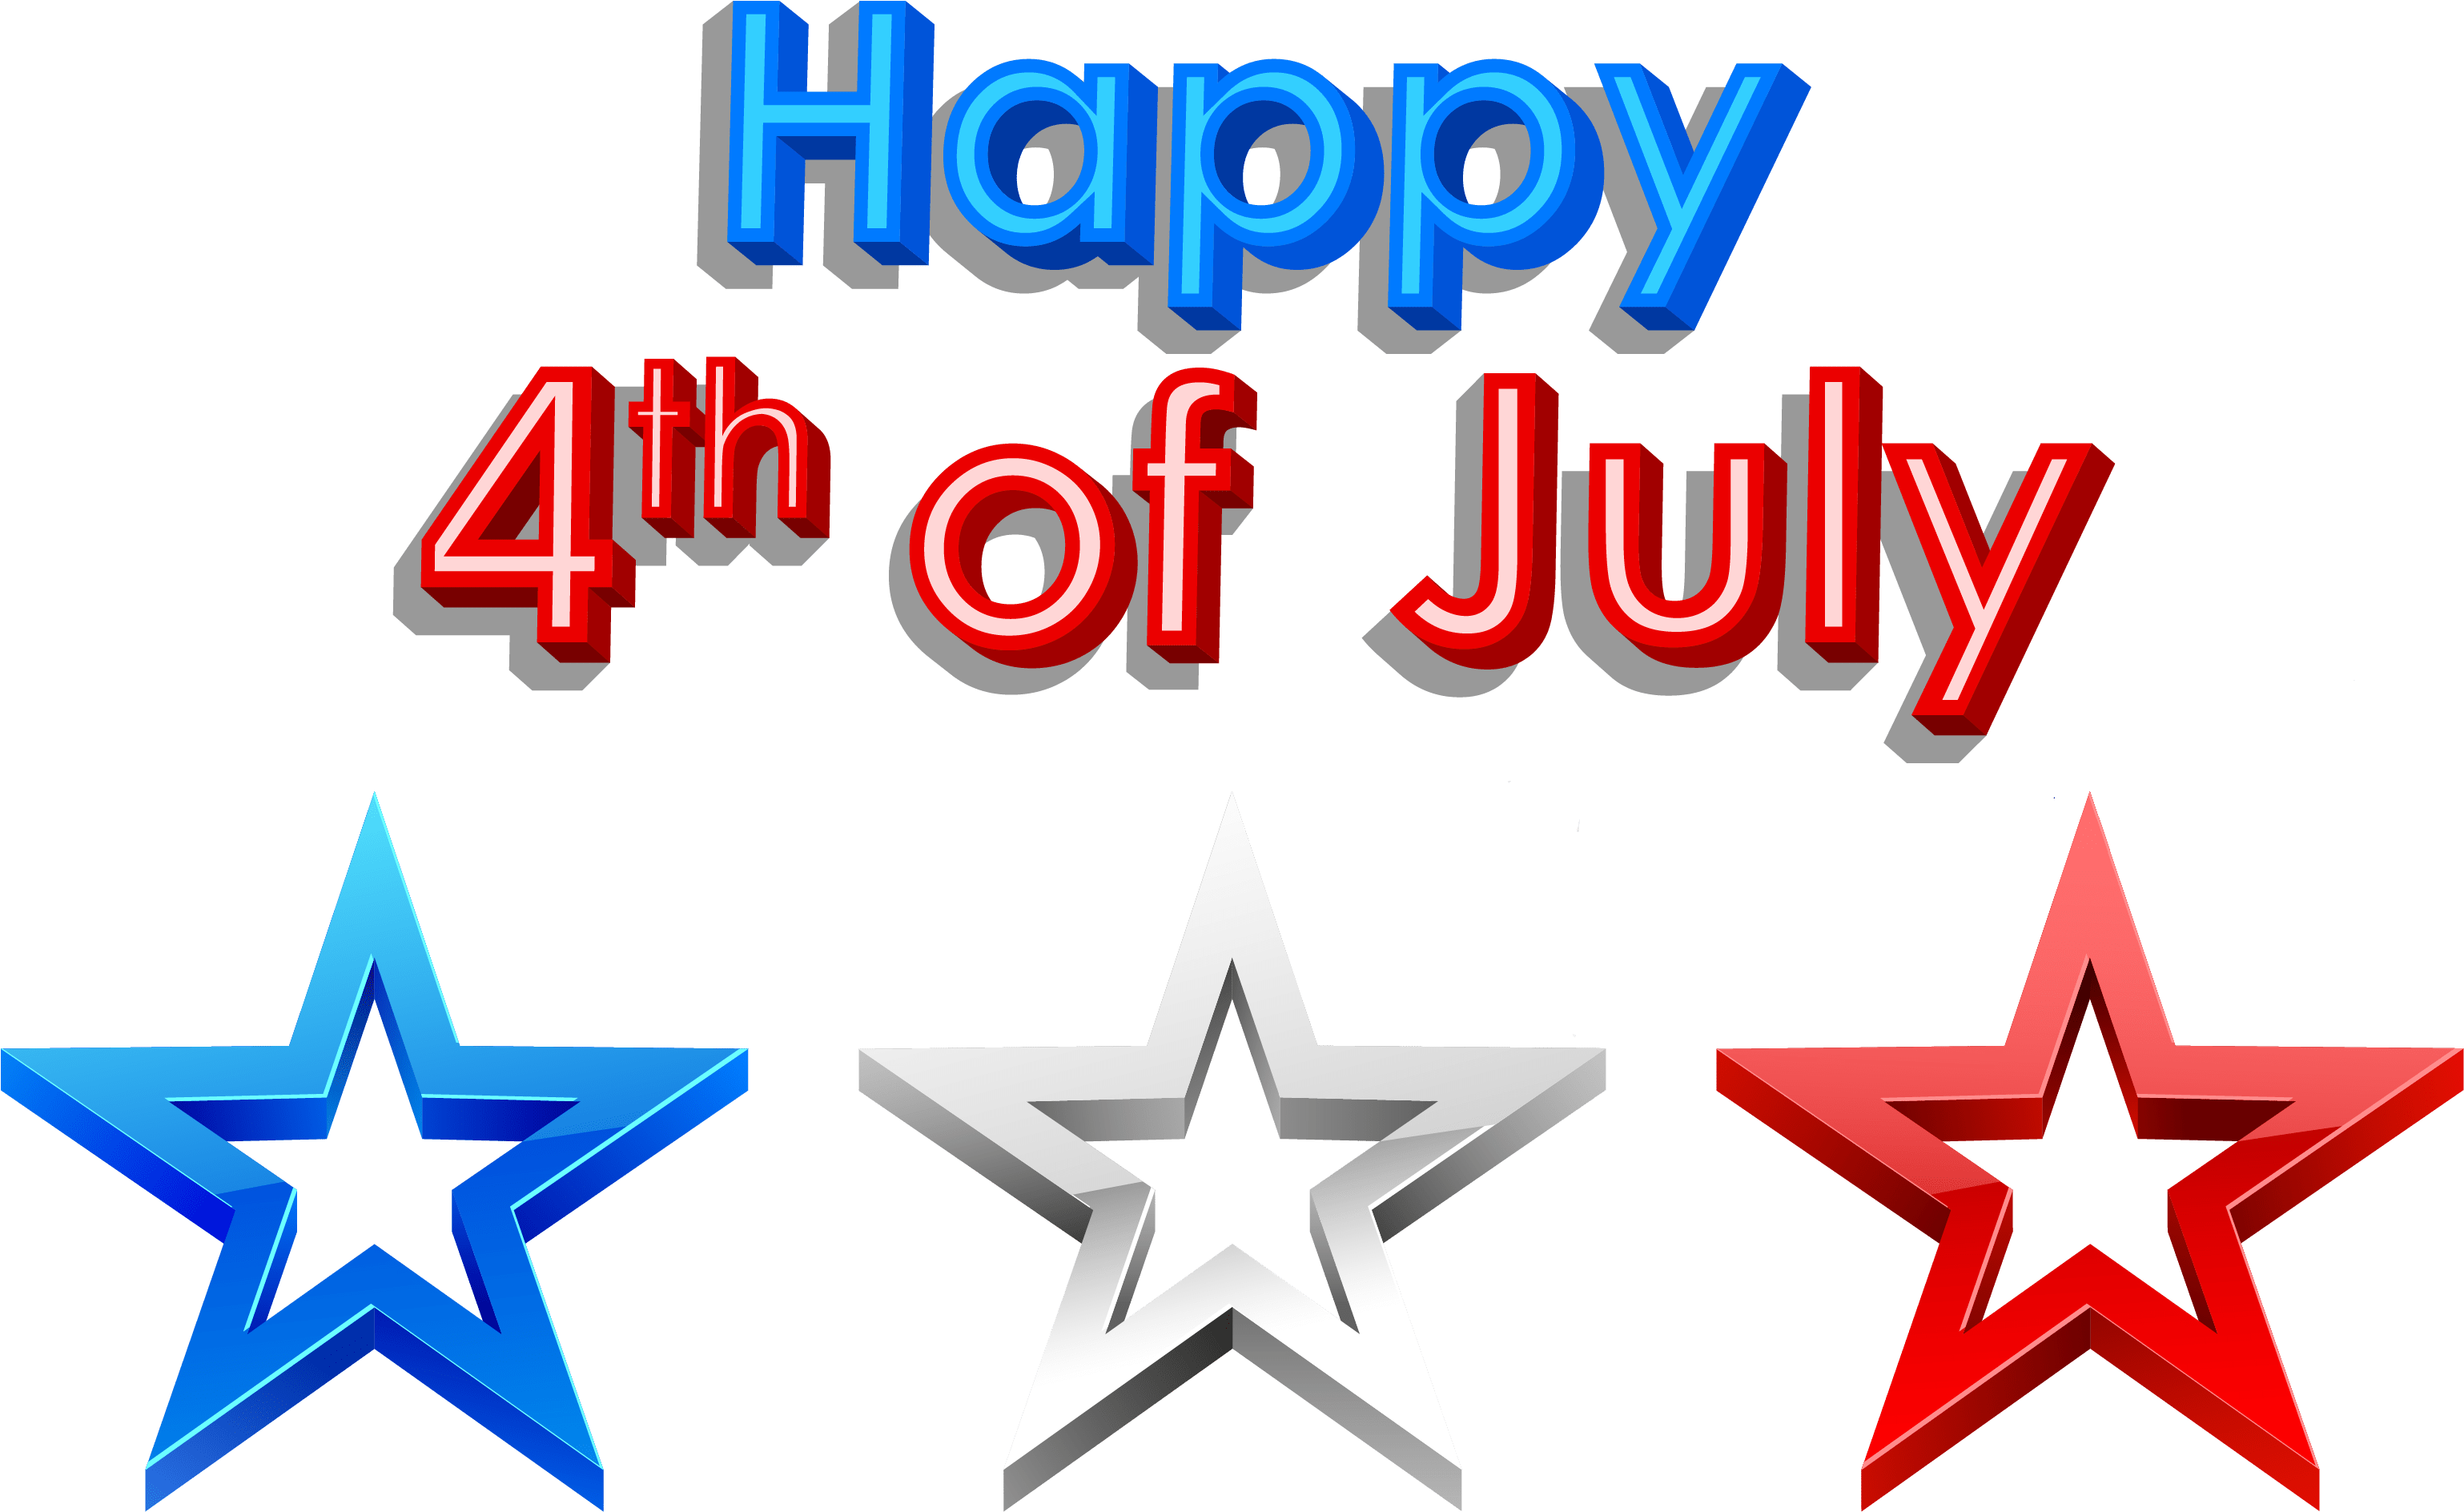 Free Clipart Images 4th Of July.